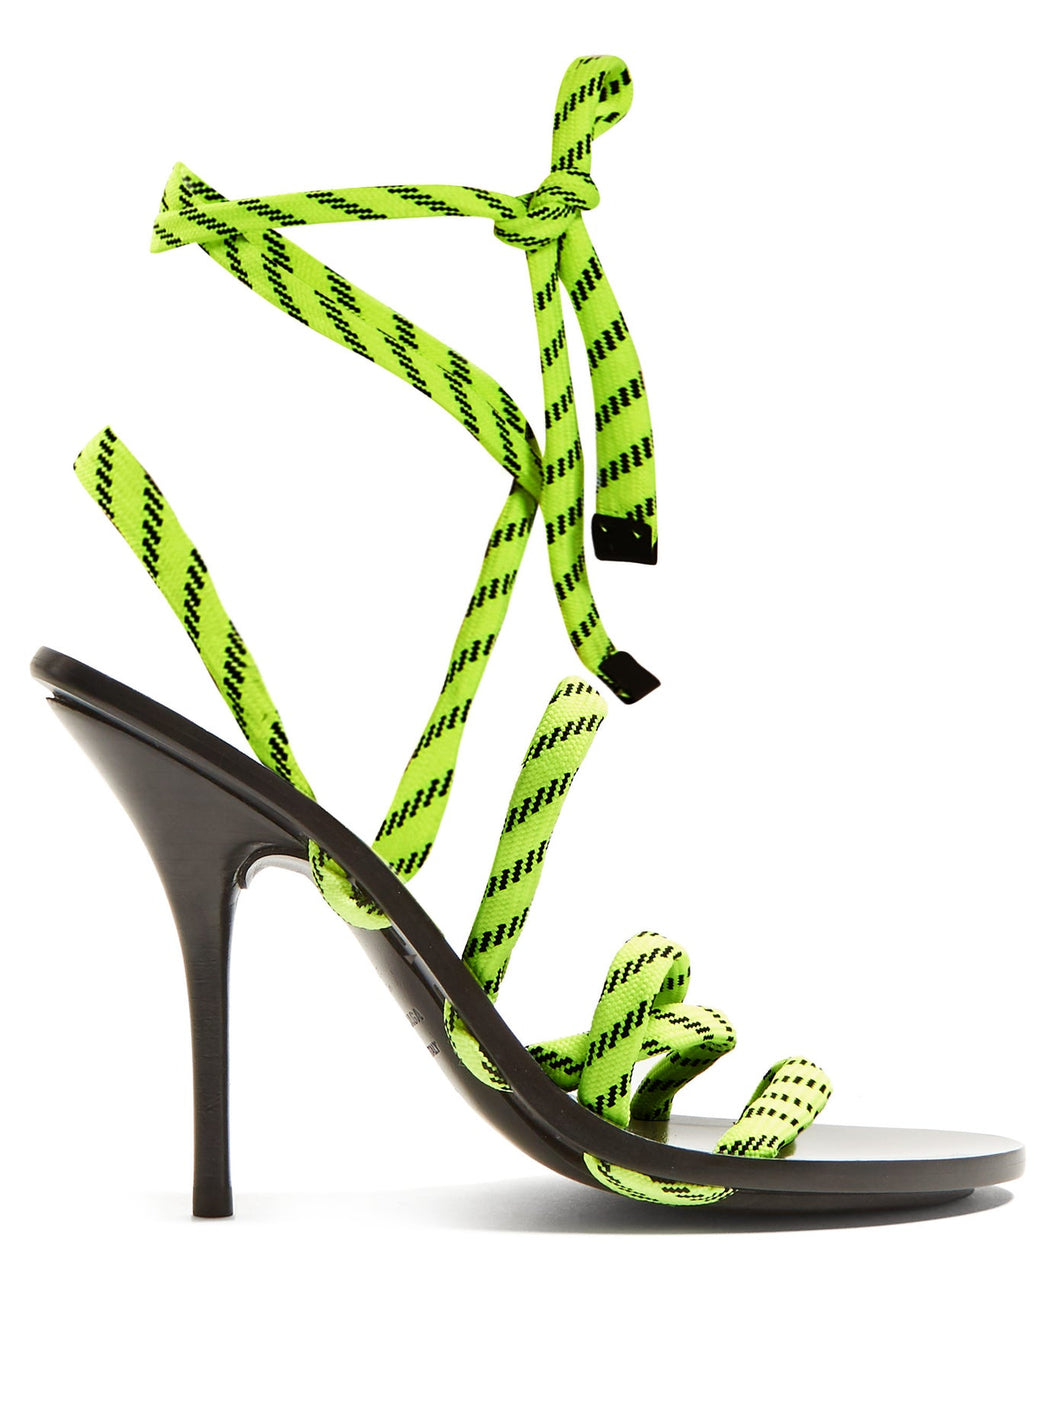 Fluorescent-laced wrap-around high-heeled sandals